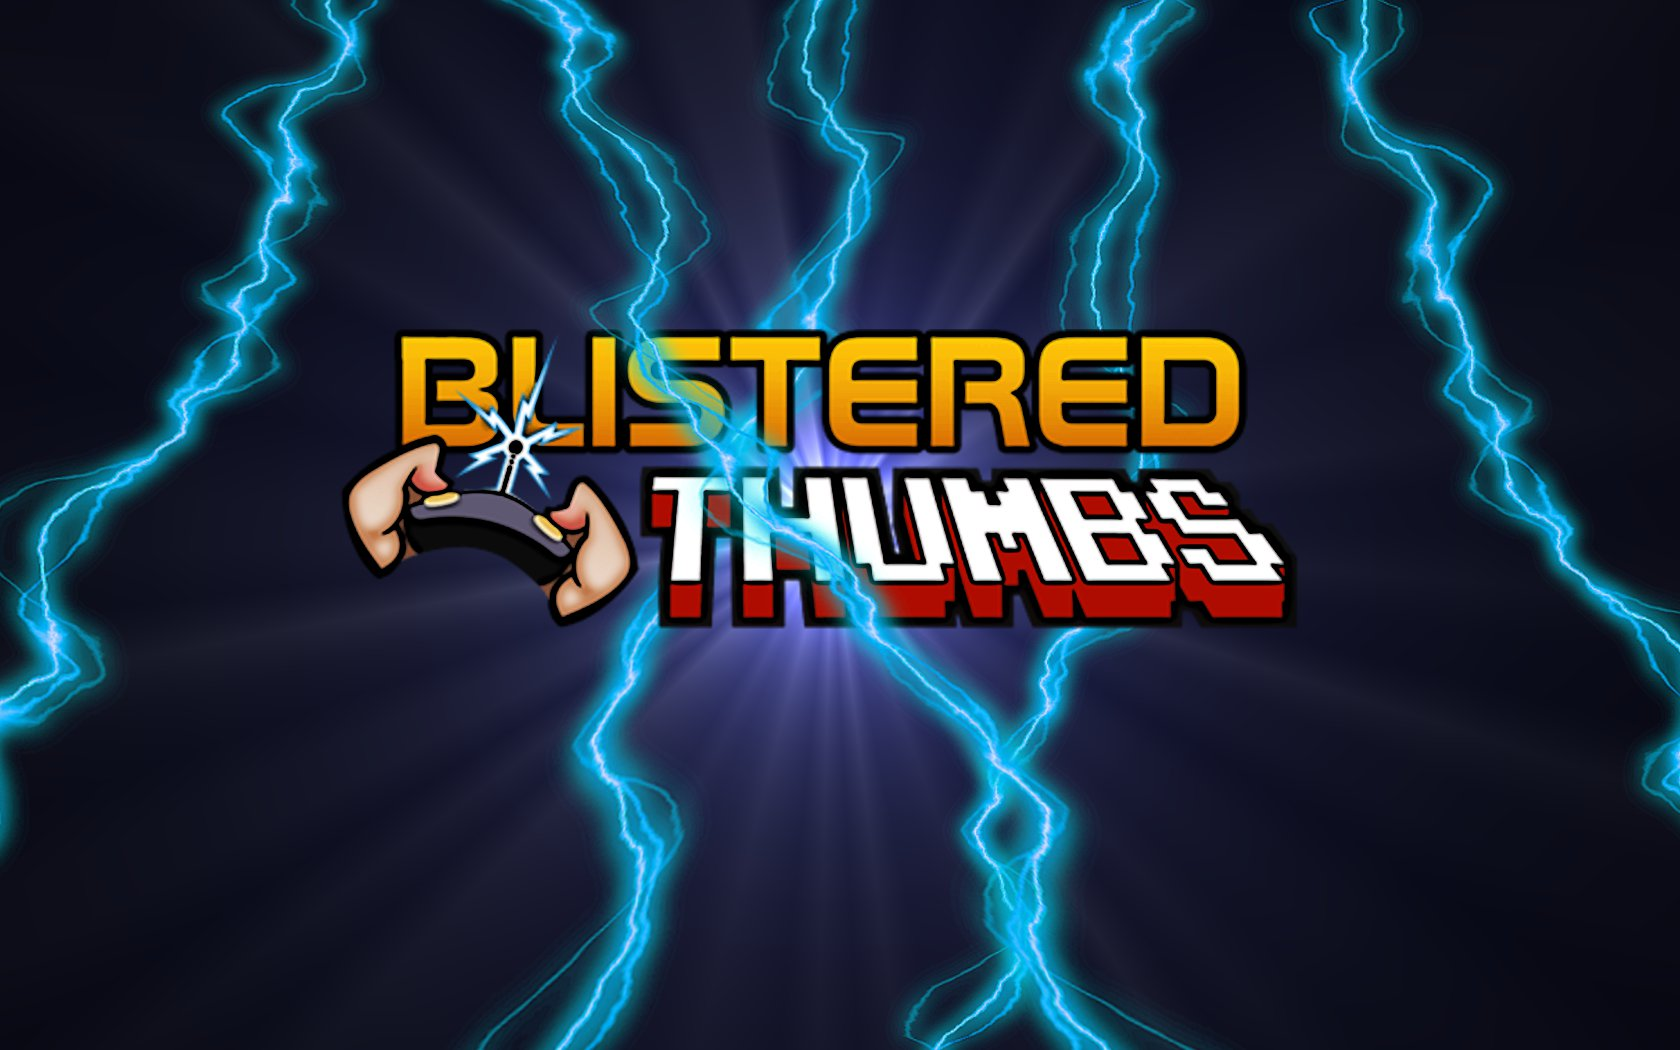 Blistered Thumbs Wallpaper by Calderyn